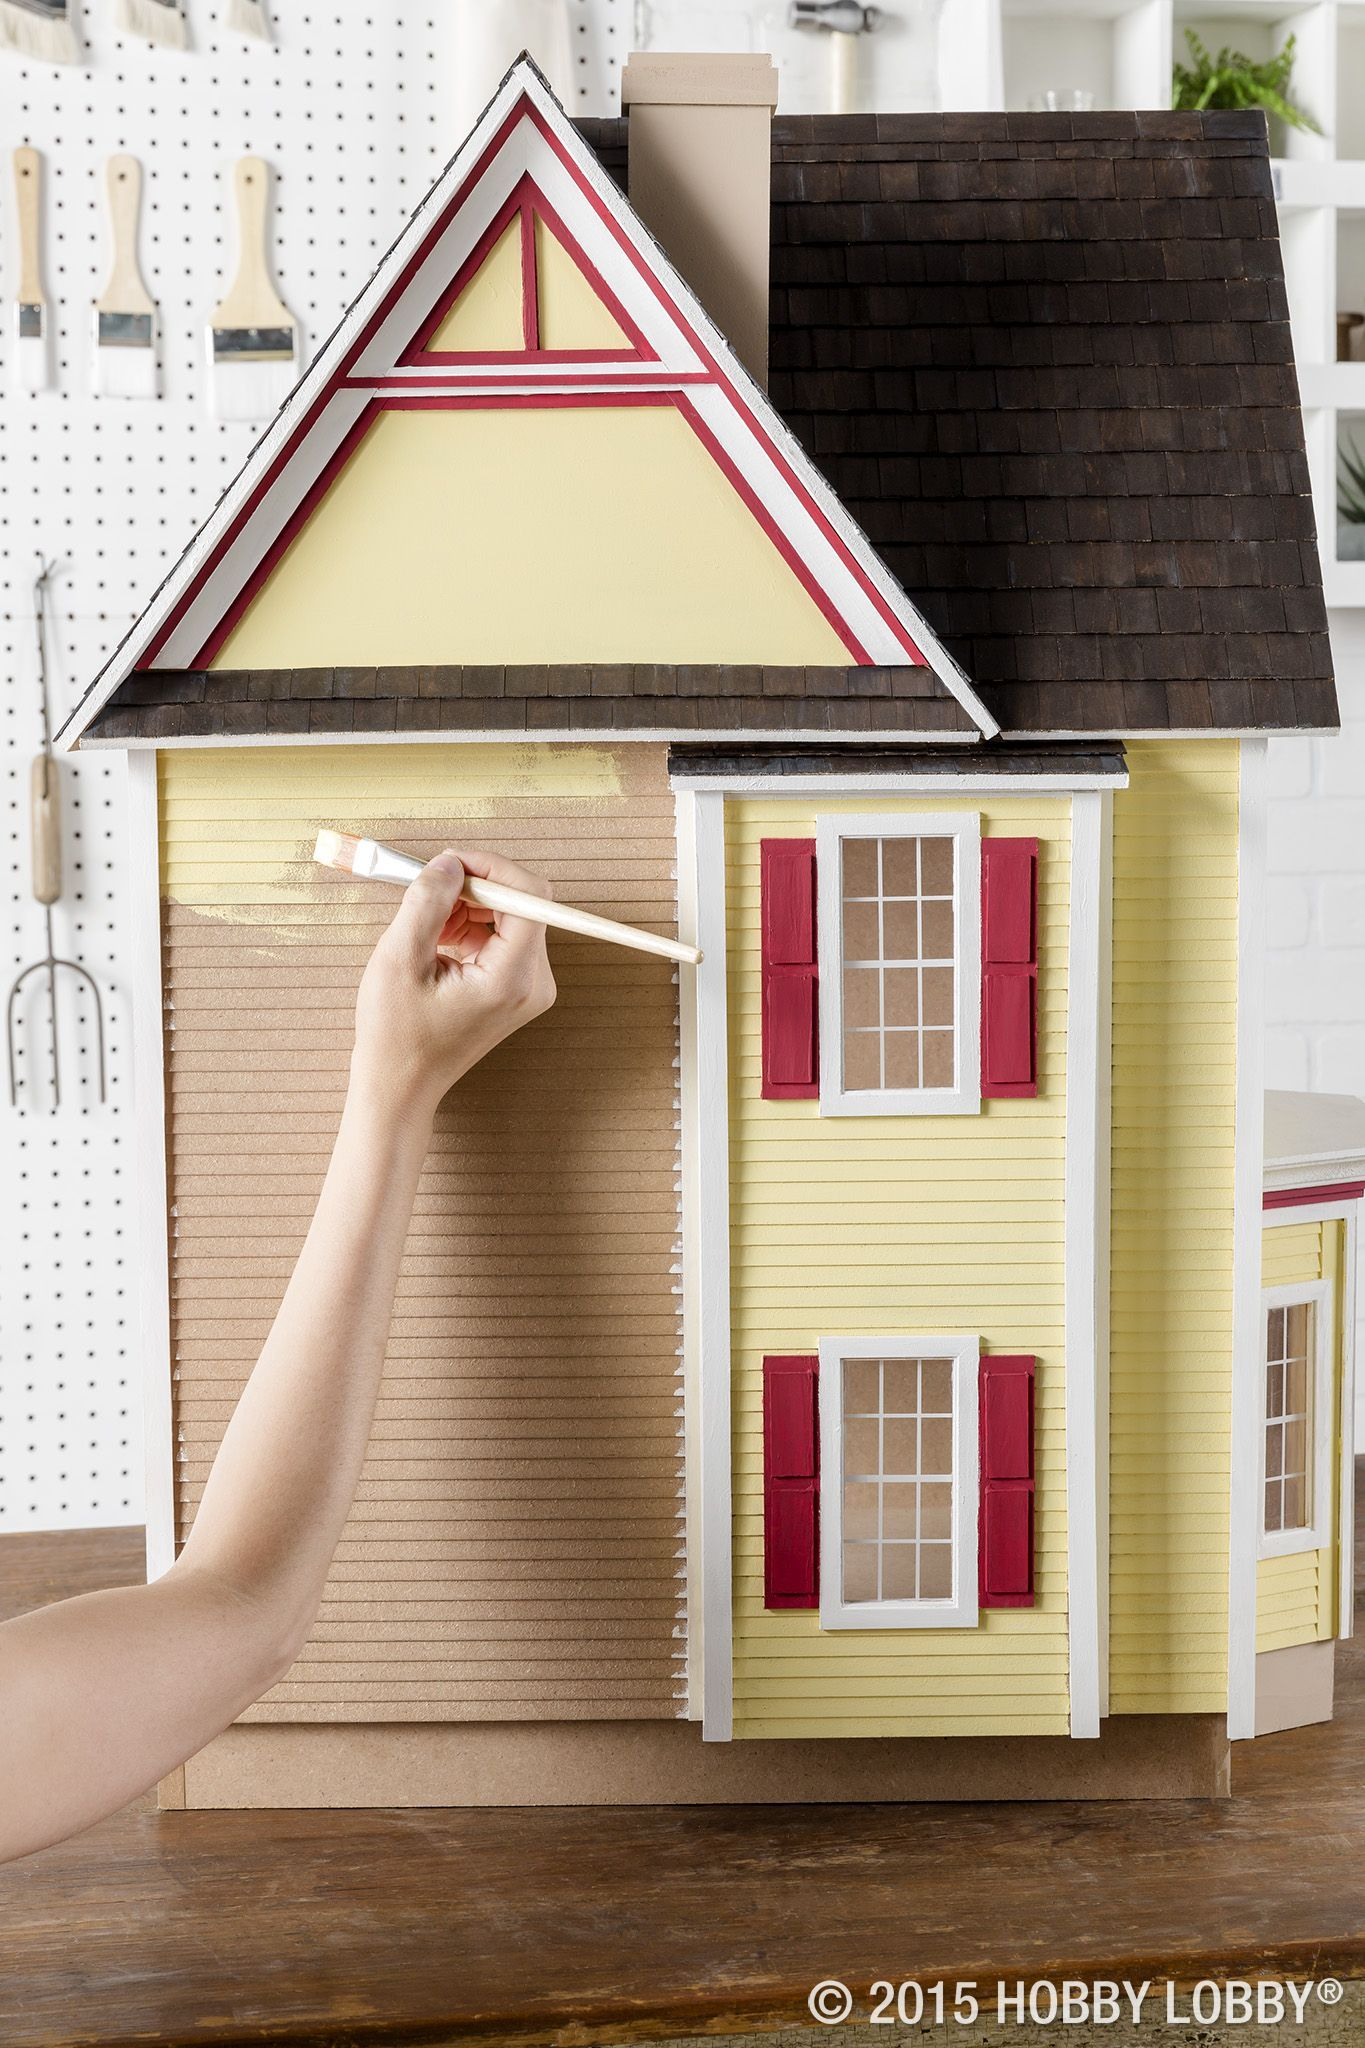 Tips For Painting A Dollhouse 1 Start Painting At The Top And Work Your Way Down 2 Tape Off Areas Y Doll House Diy Dollhouse Dollhouse Miniature Tutorials